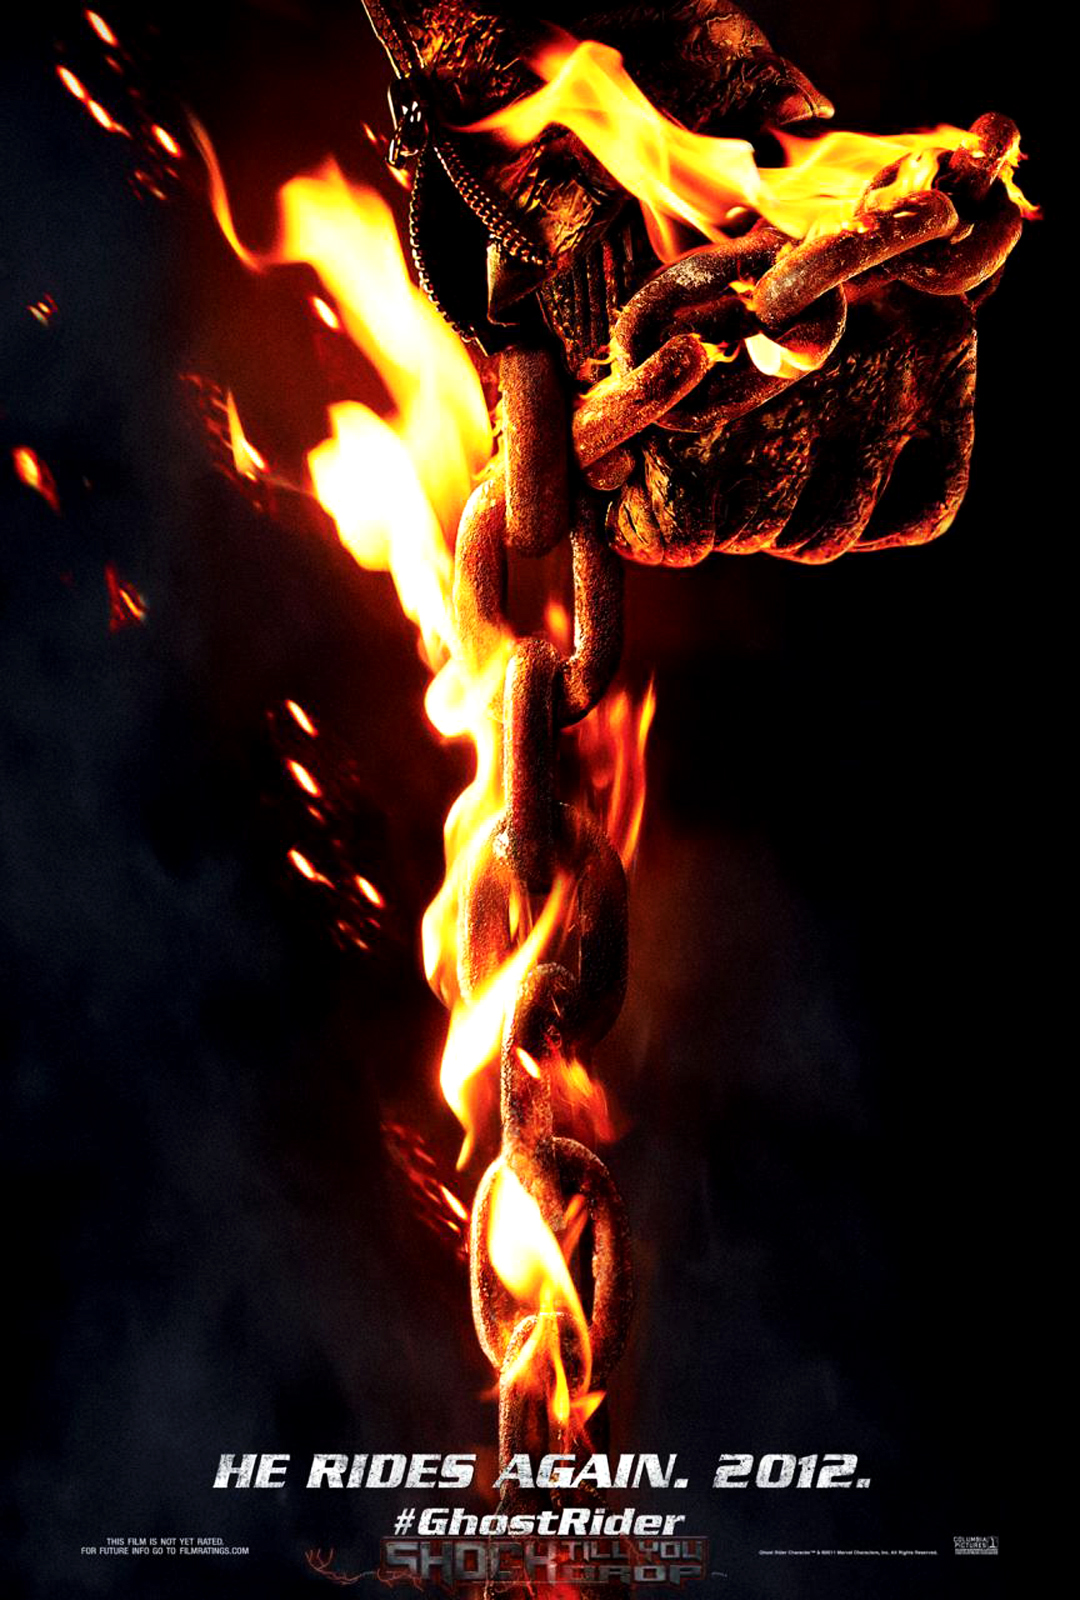 Ghost rider 2 spirit of vengeance 2012 movie poster hand with flaming